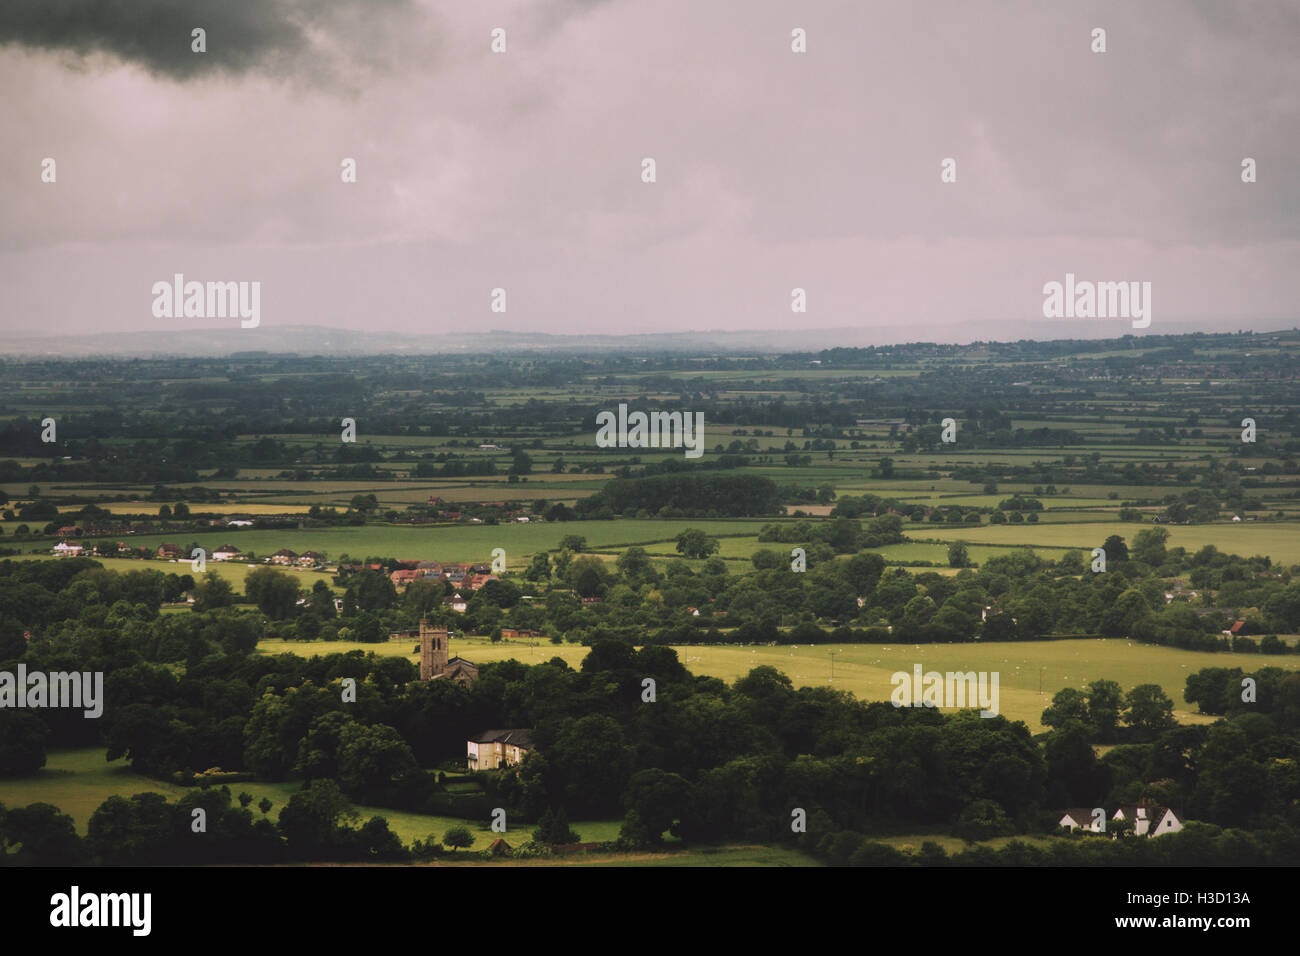 View over a church in the Chilterns, Buckinghamshire, England Vintage Retro Filter. - Stock Image